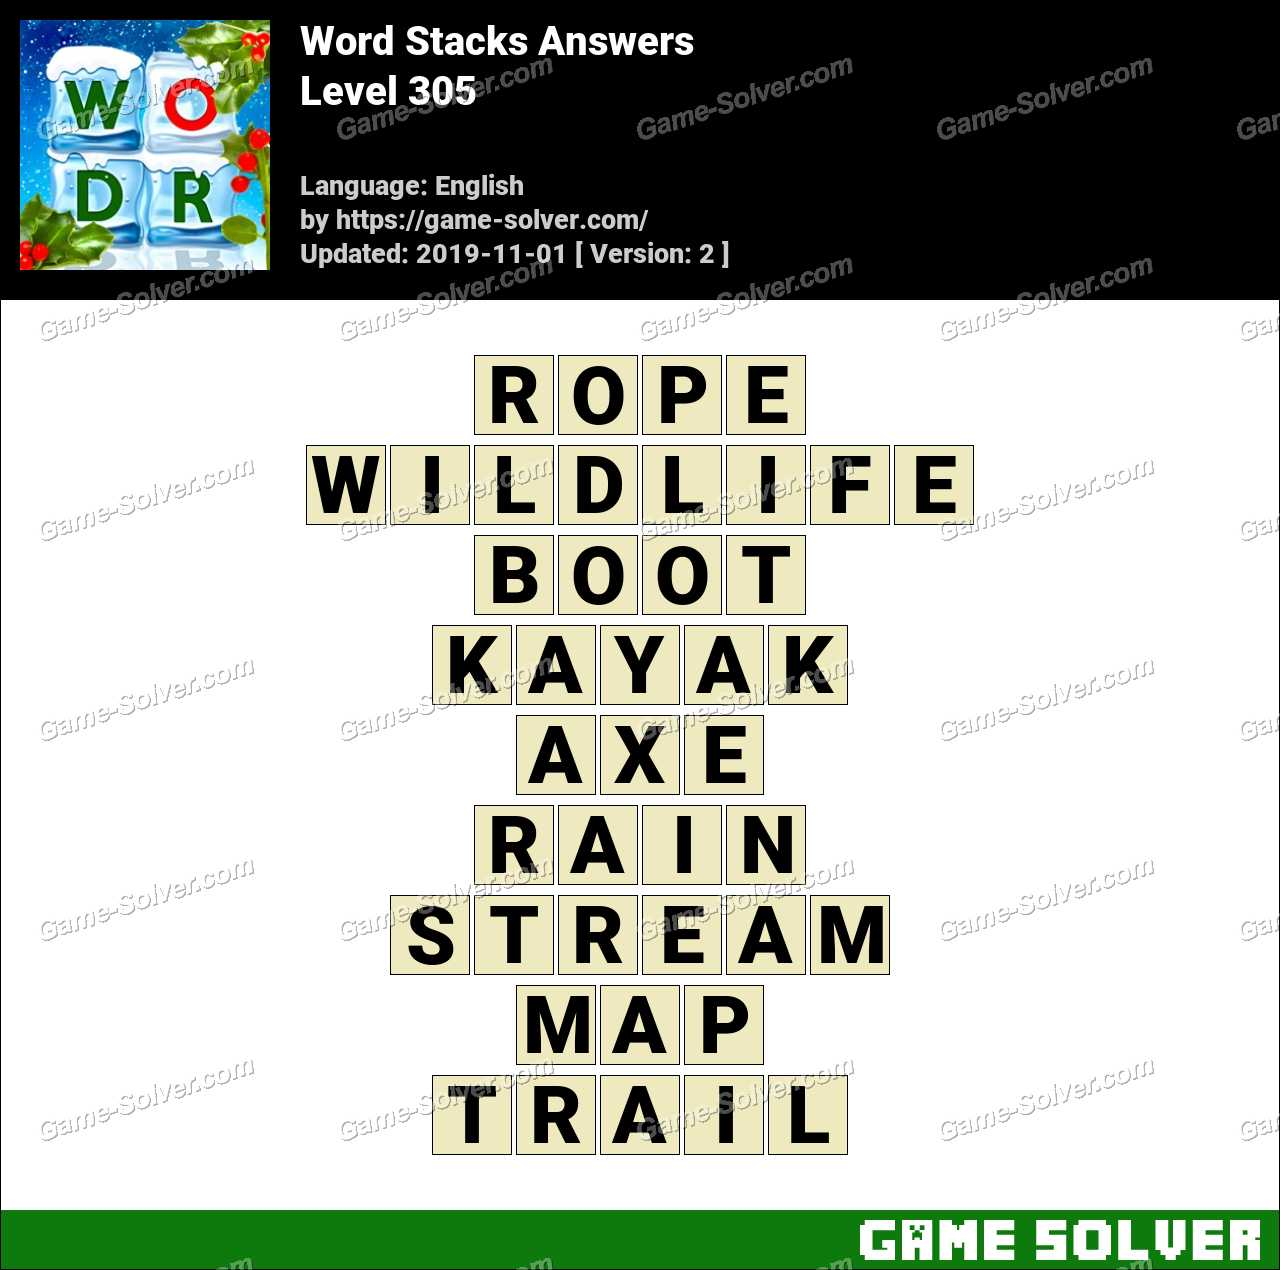 Word Stacks Level 305 Answers